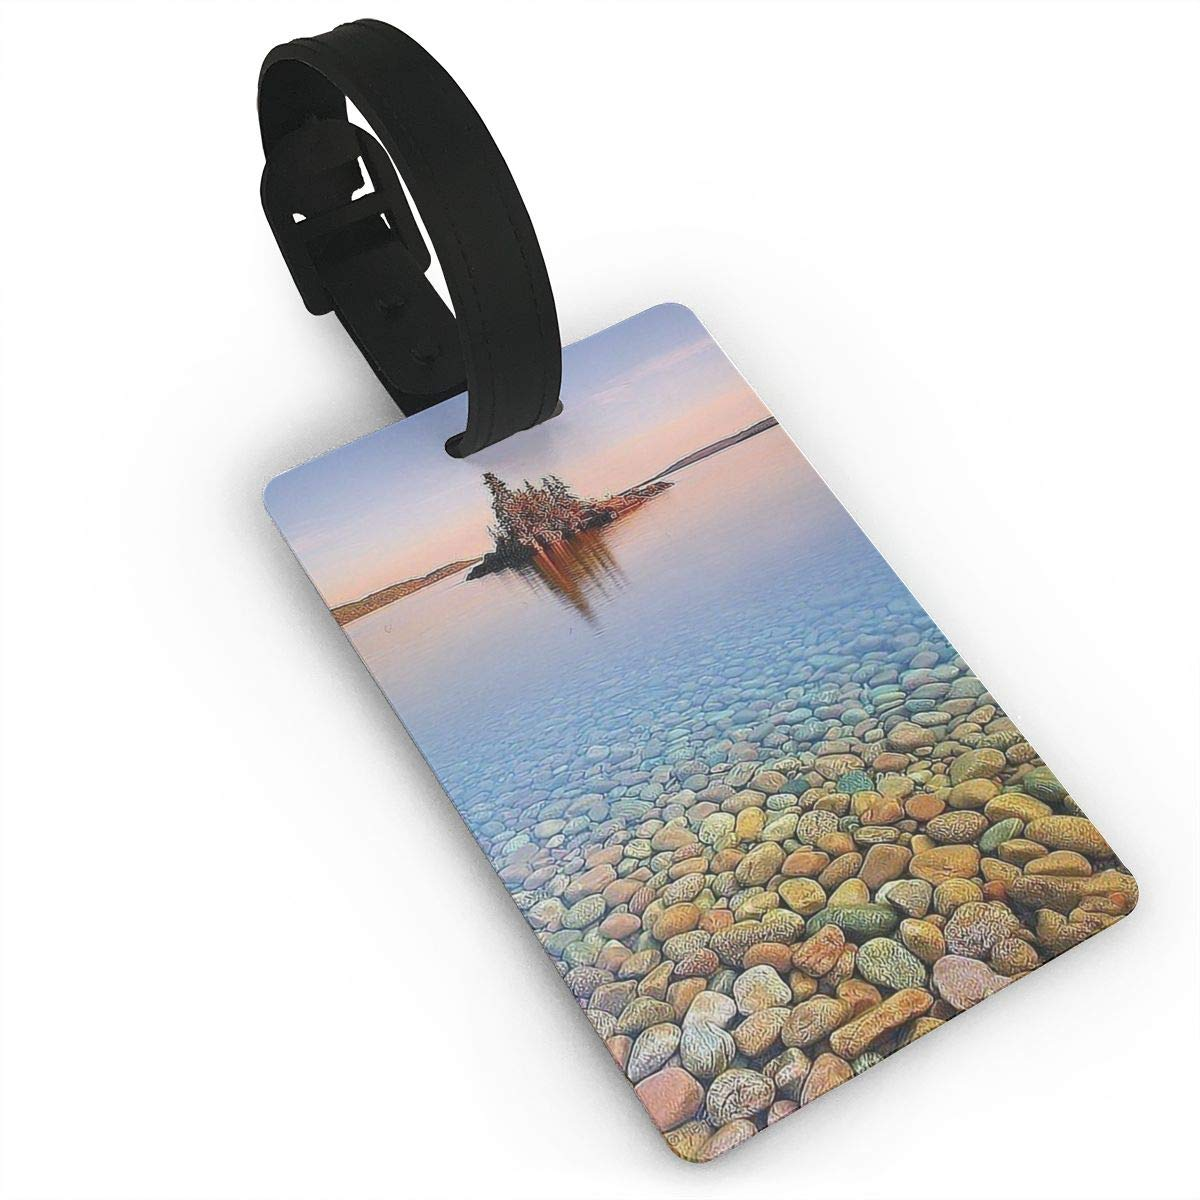 Cobblestone Baggage Tag For Suitcase Bag Accessories 2 Pack Luggage Tags